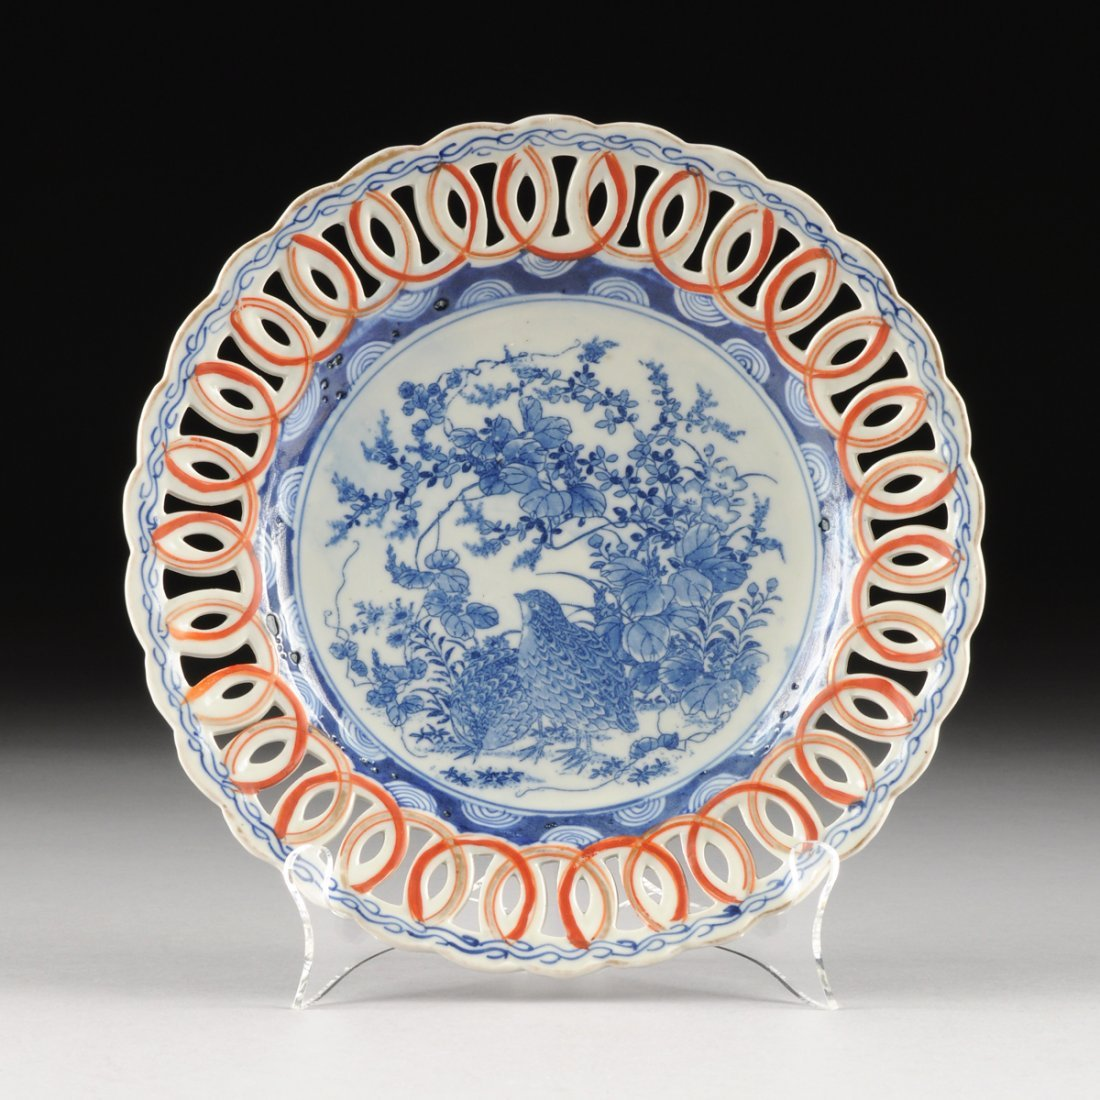 A JAPANESE IMARI HAND PAINTED PORCELAIN RETICULATED